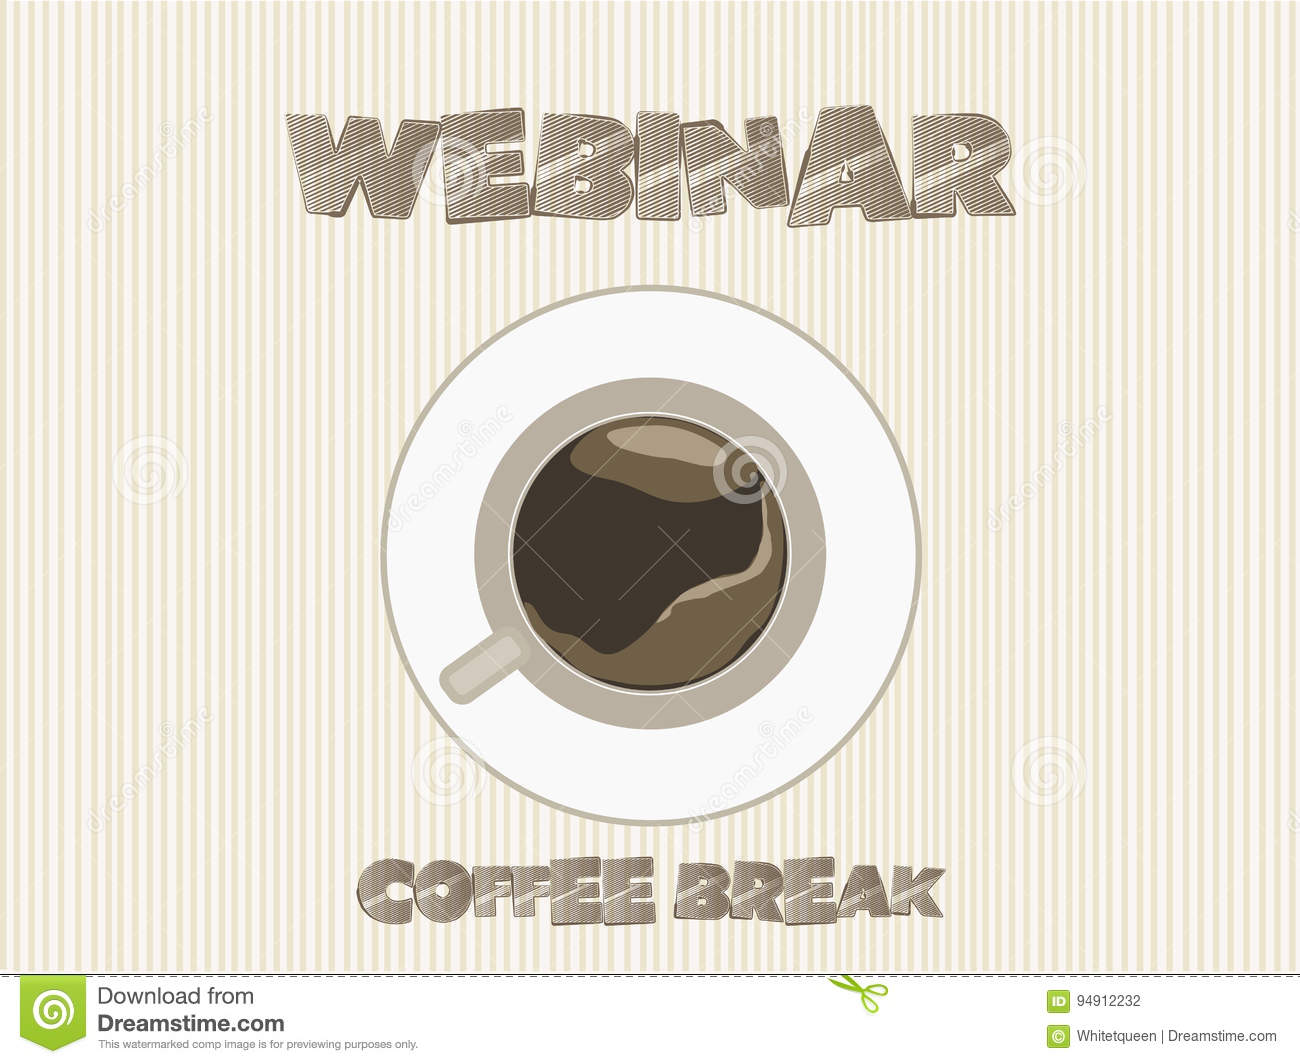 webinar coffee break vector stock vector illustration of books image 94912232. Black Bedroom Furniture Sets. Home Design Ideas